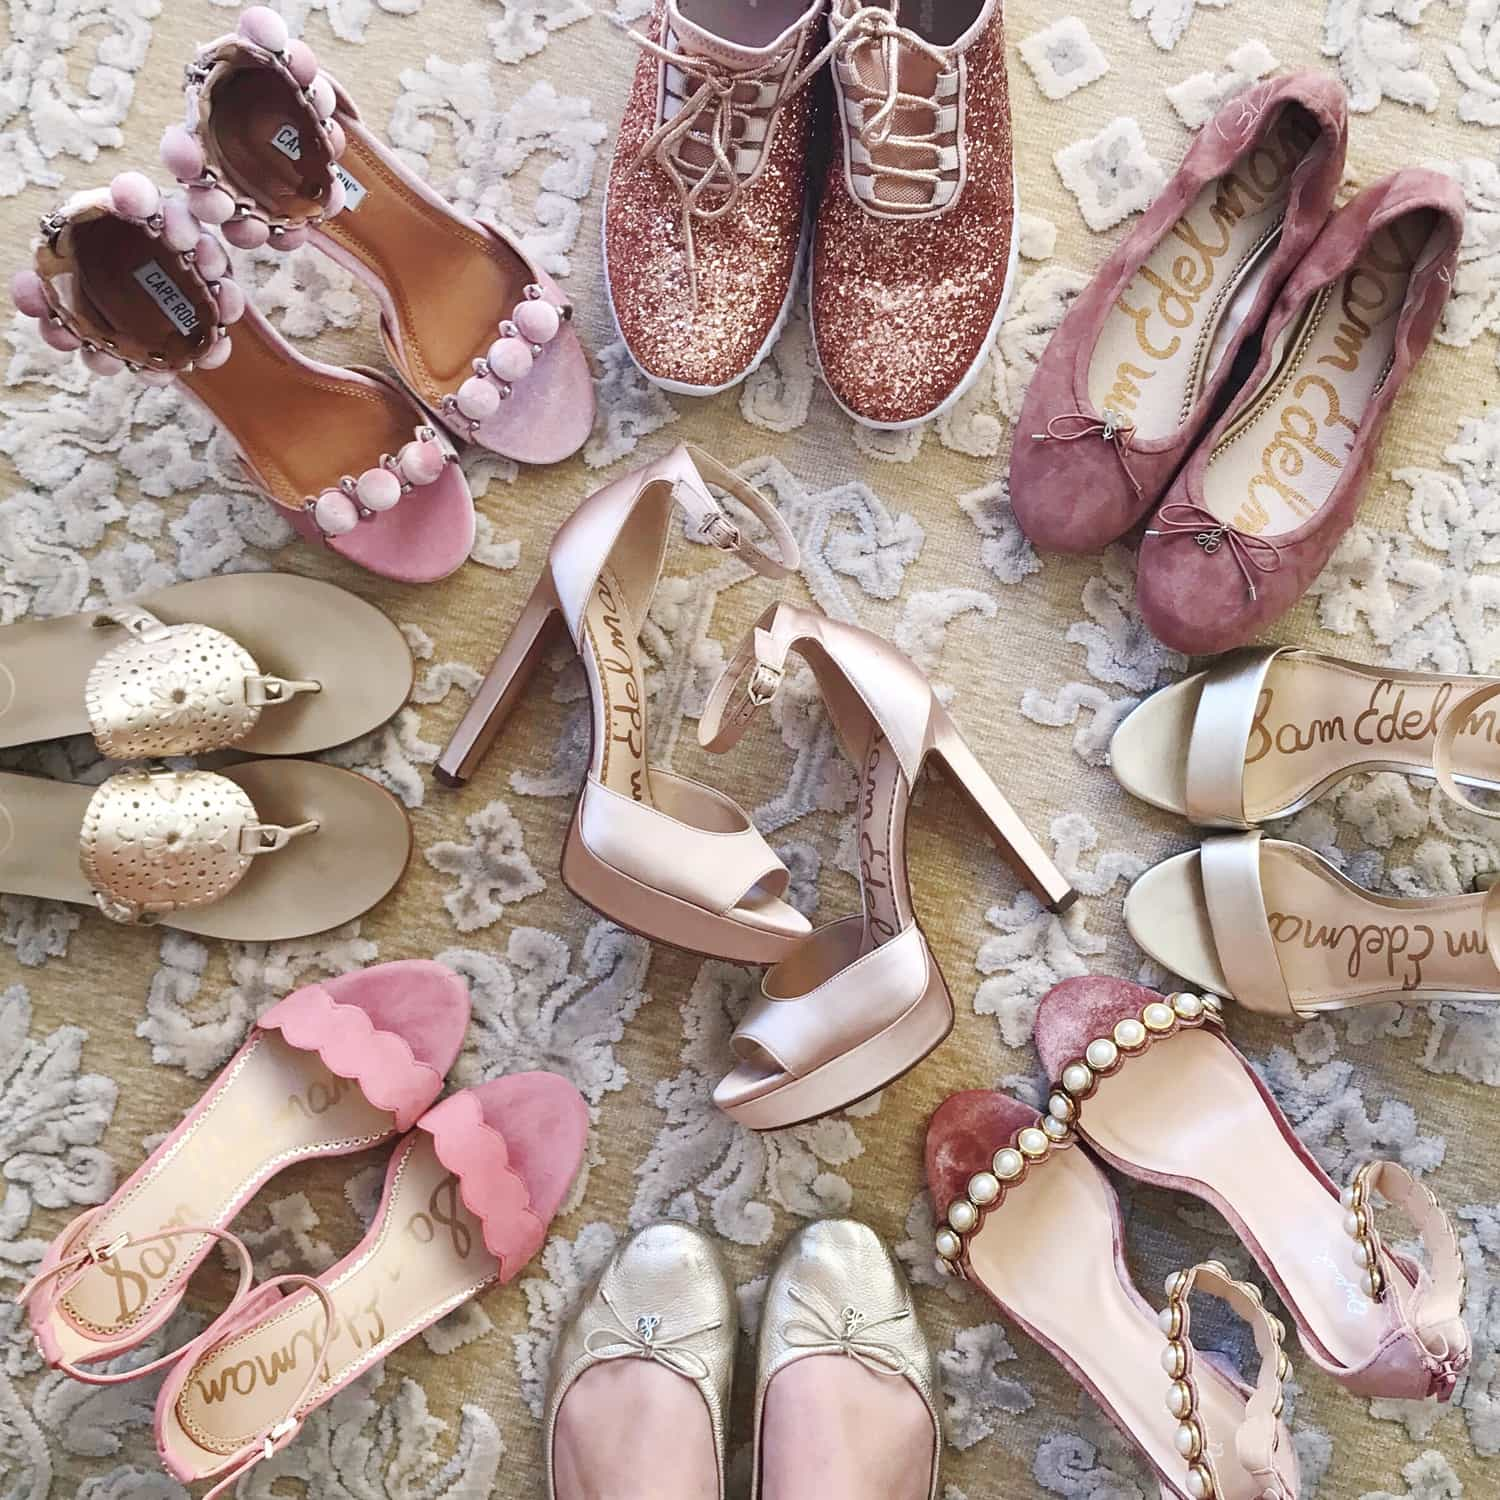 Shopbop sale picks , pretty shoes, high heels, blush and gold high heels